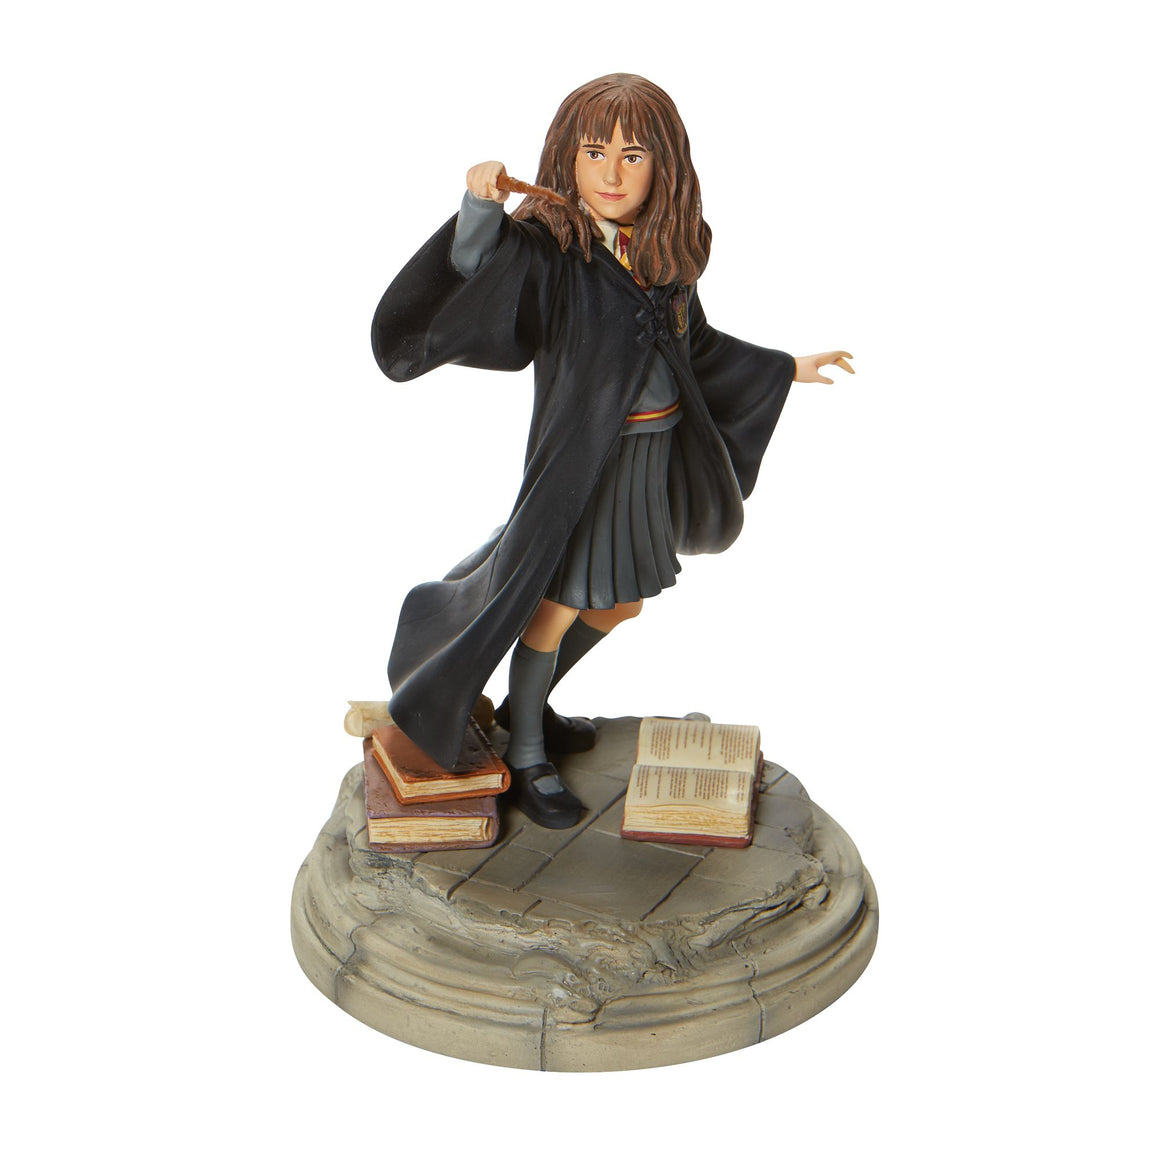 Hermione Year One Figurine - The Wizarding World of Harry Potter